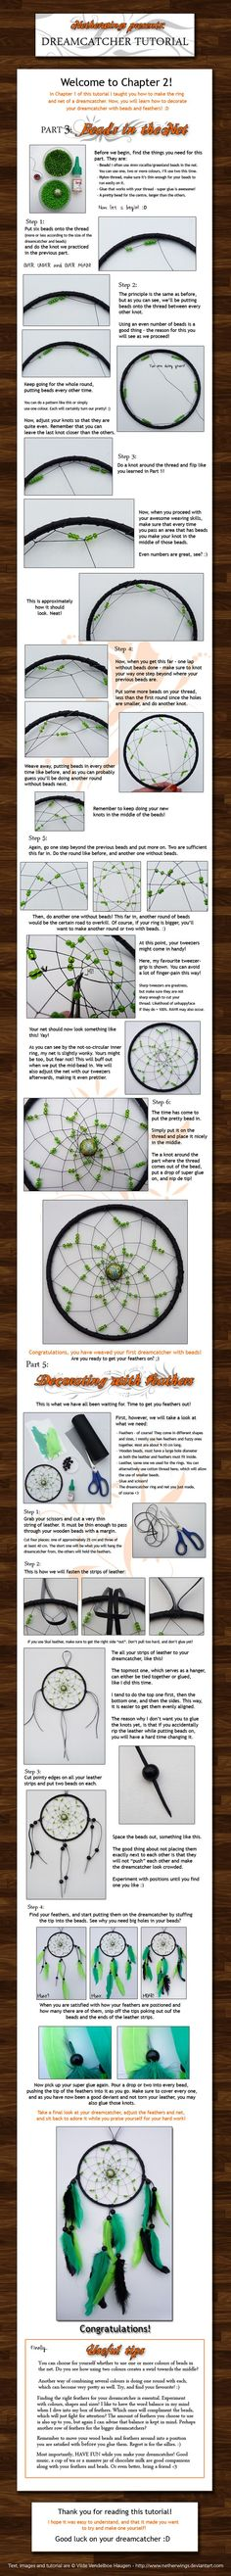 Dreamcatcher tutorial: